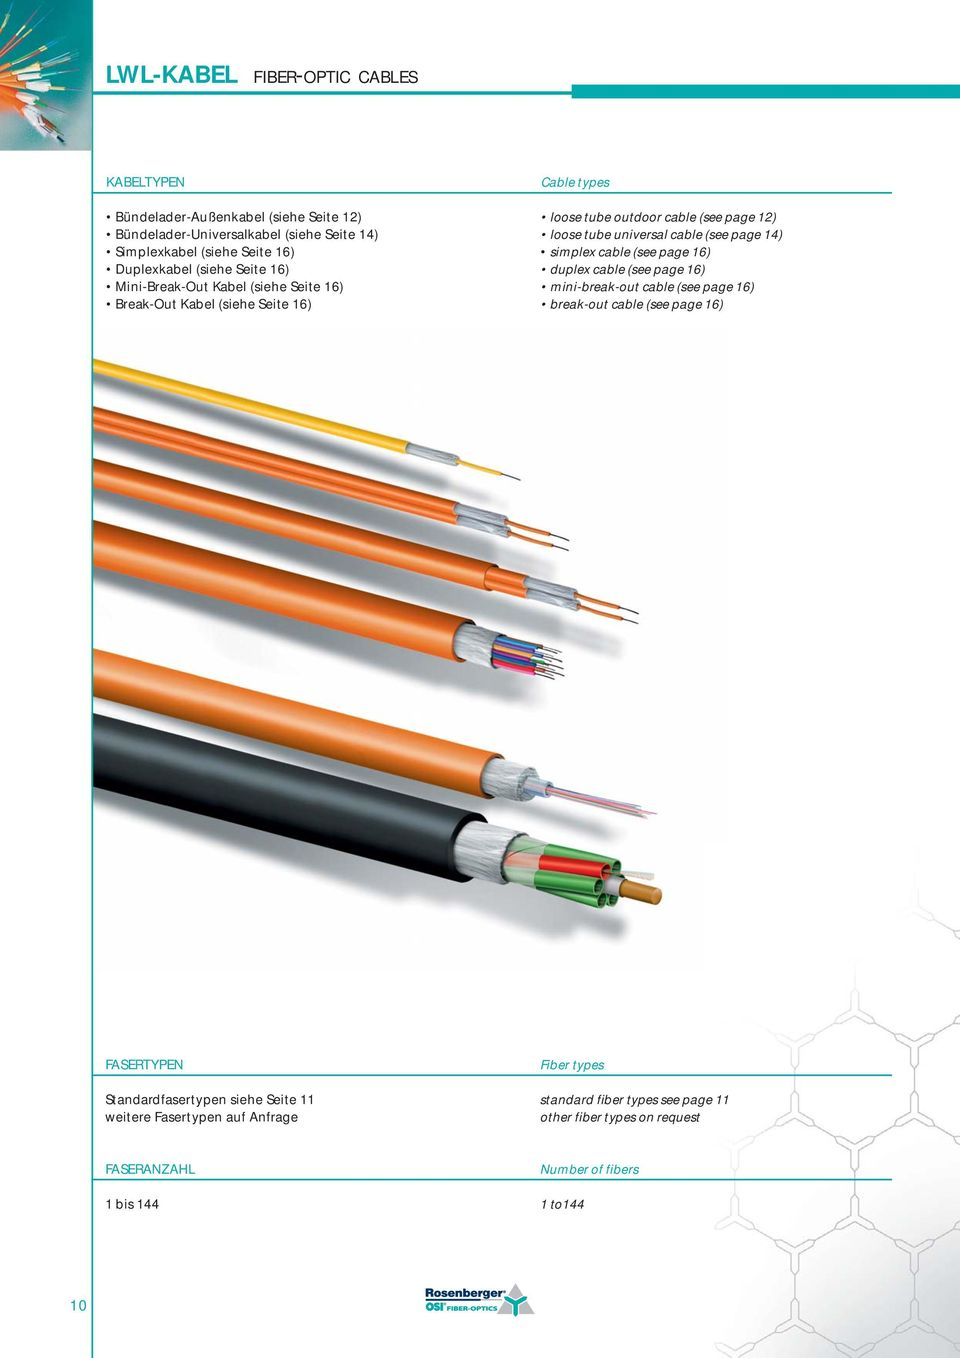 (see page 14) simplex cable (see page 16) duplex cable (see page 16) mini-break-out cable (see page 16) break-out cable (see page 16) FASERTYPEN Standardfasertypen